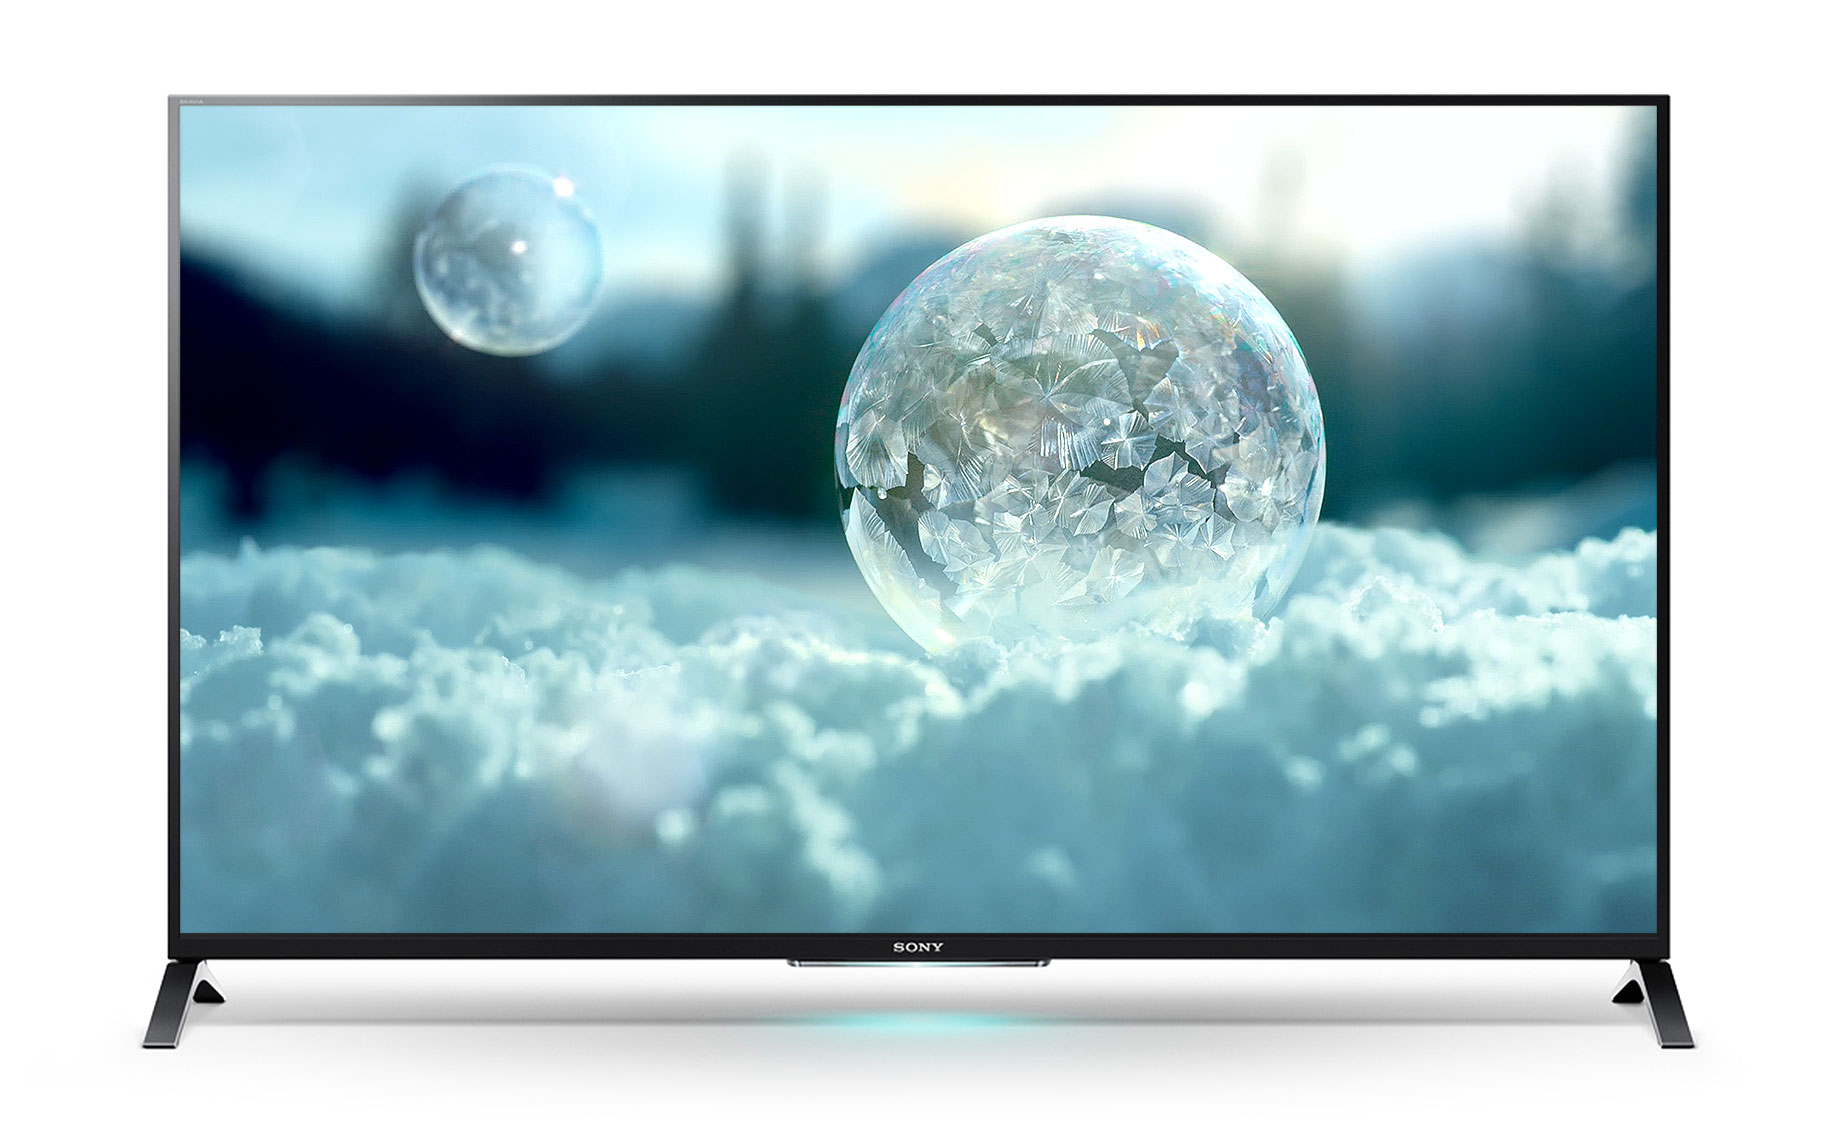 4k ultra hd tvs four times the detail of full hd sony uk. Black Bedroom Furniture Sets. Home Design Ideas